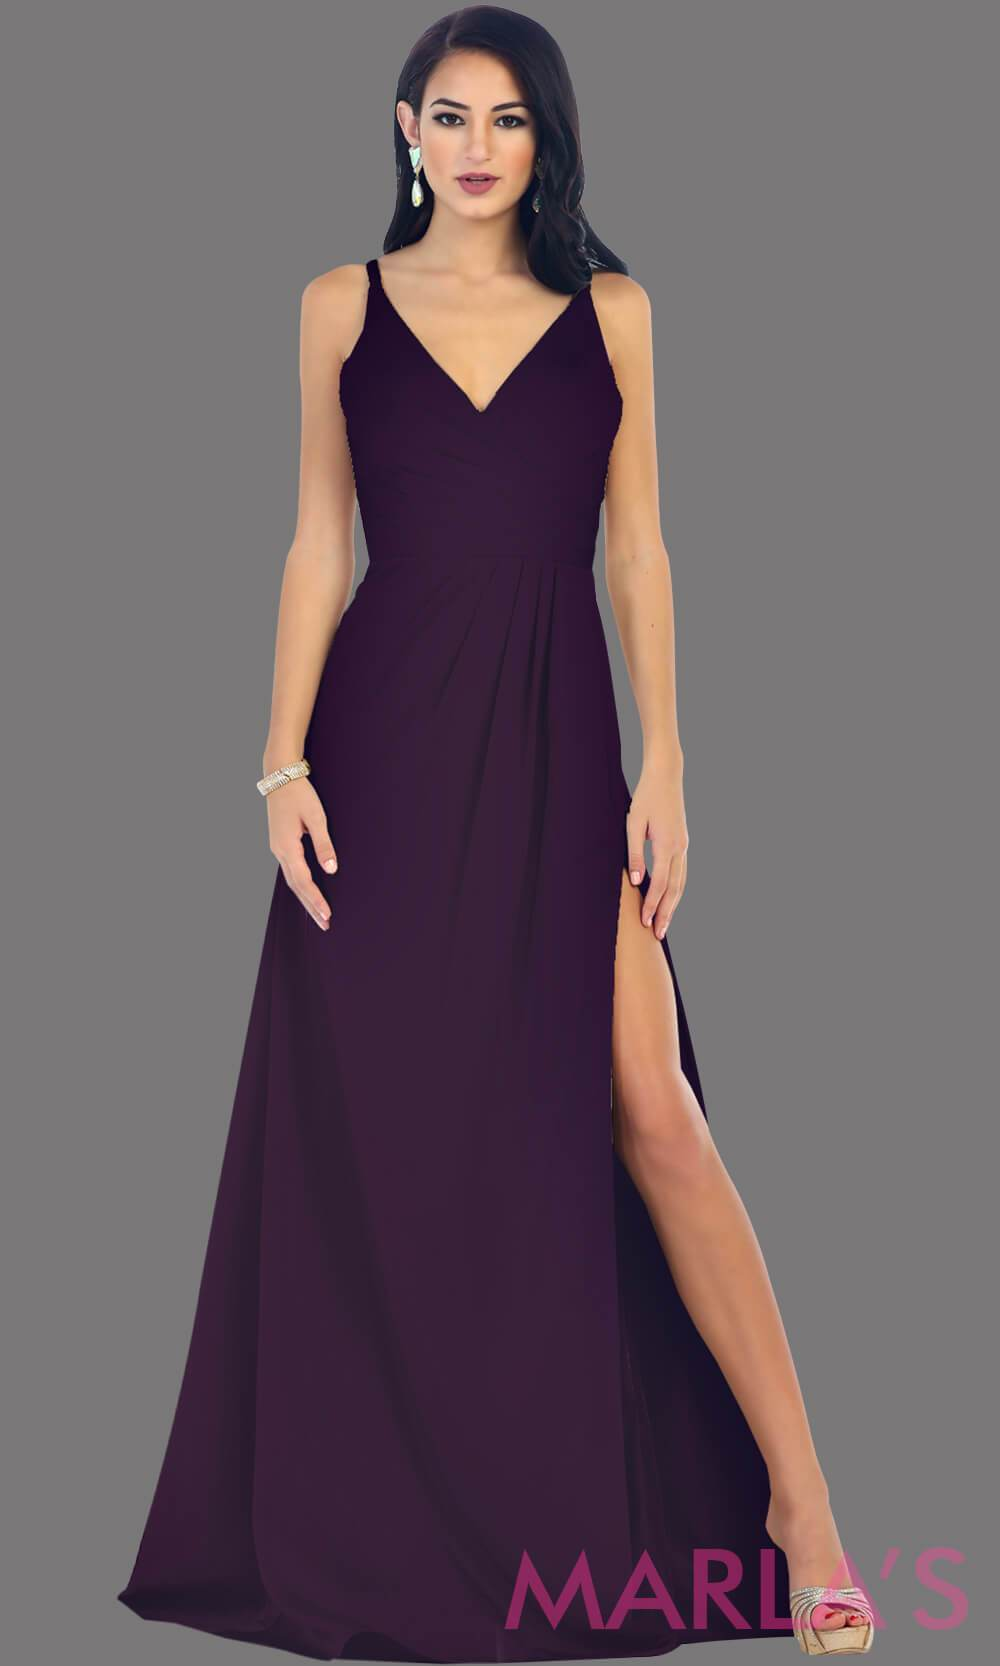 Purple bridesmaid dresses marlas fashions eggplant long fitted jersey dress with high slit ombrellifo Image collections